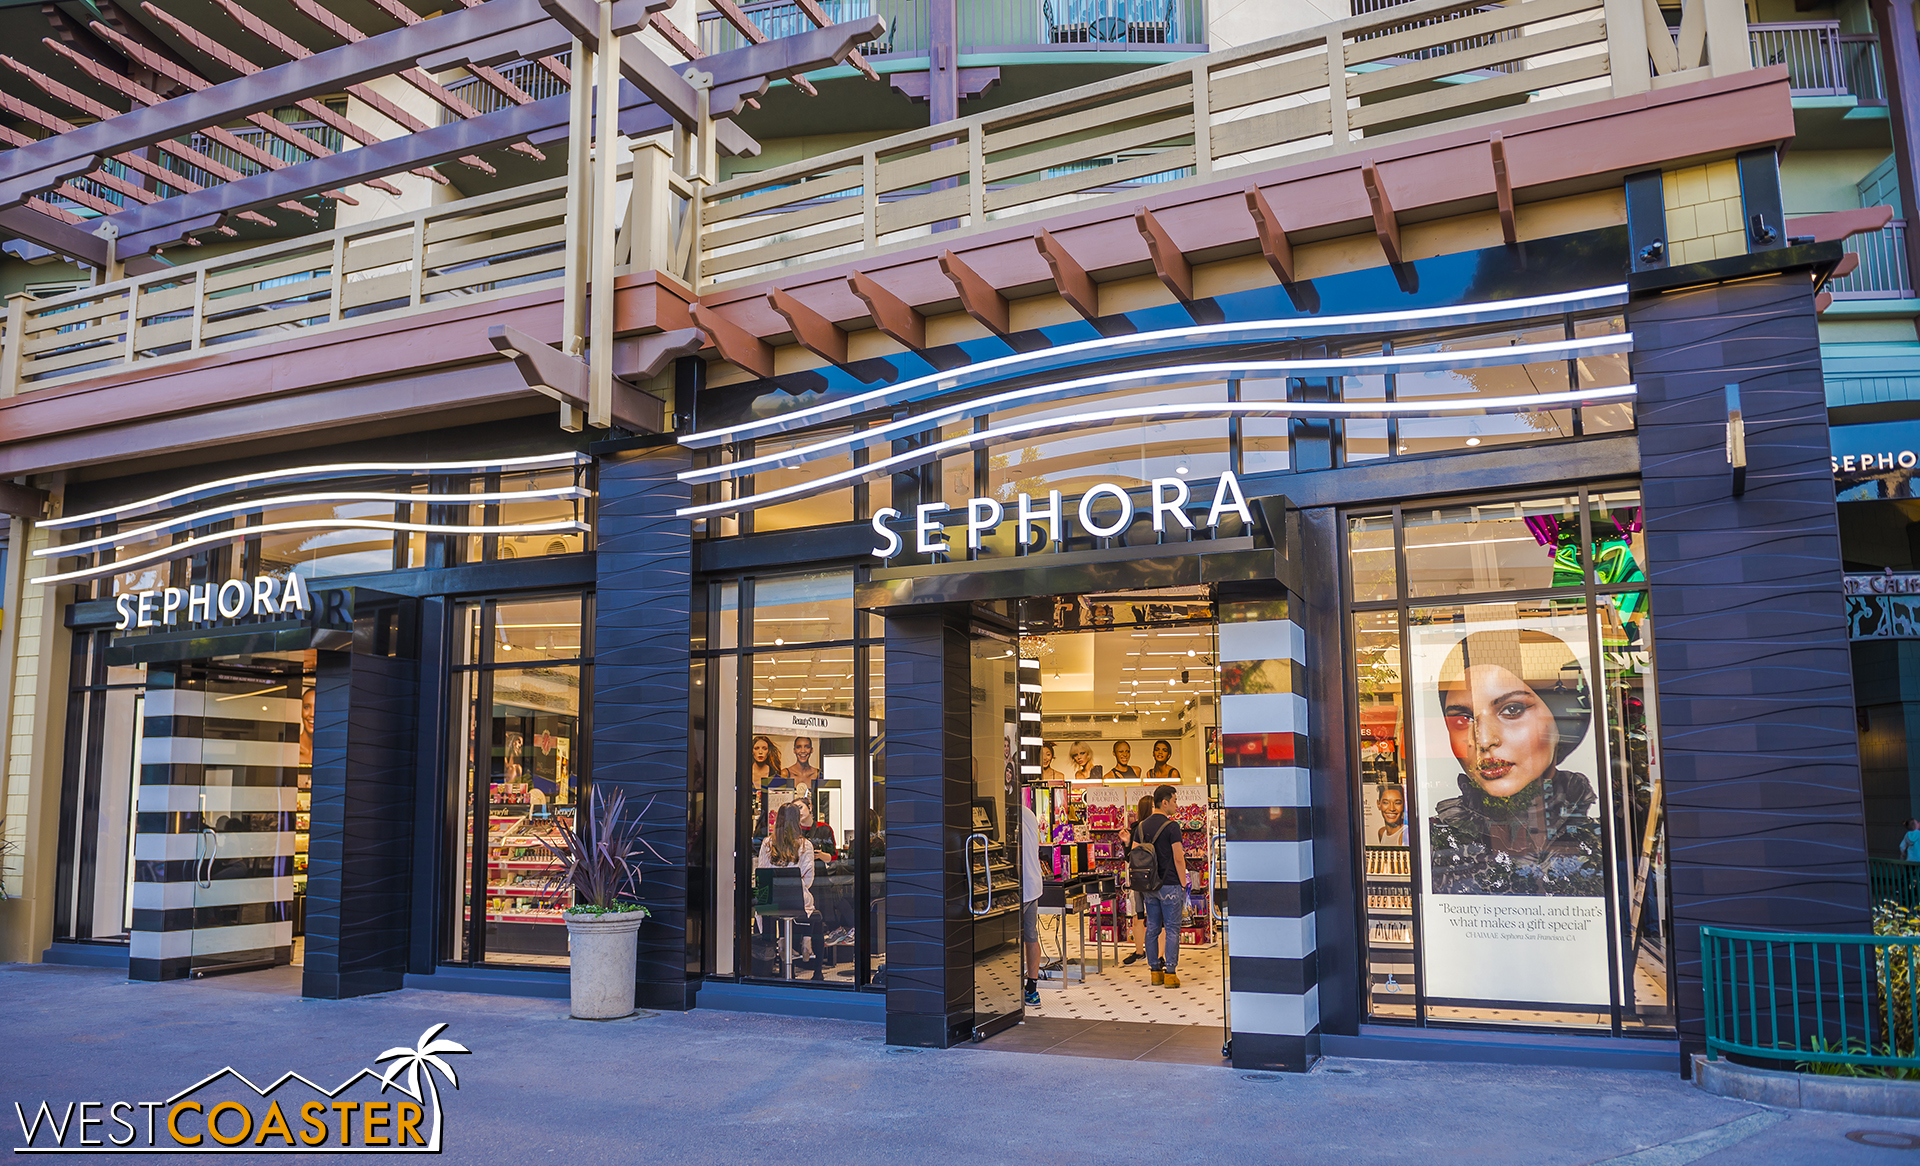 And Sephora's facade now looks a little more ripply textured.